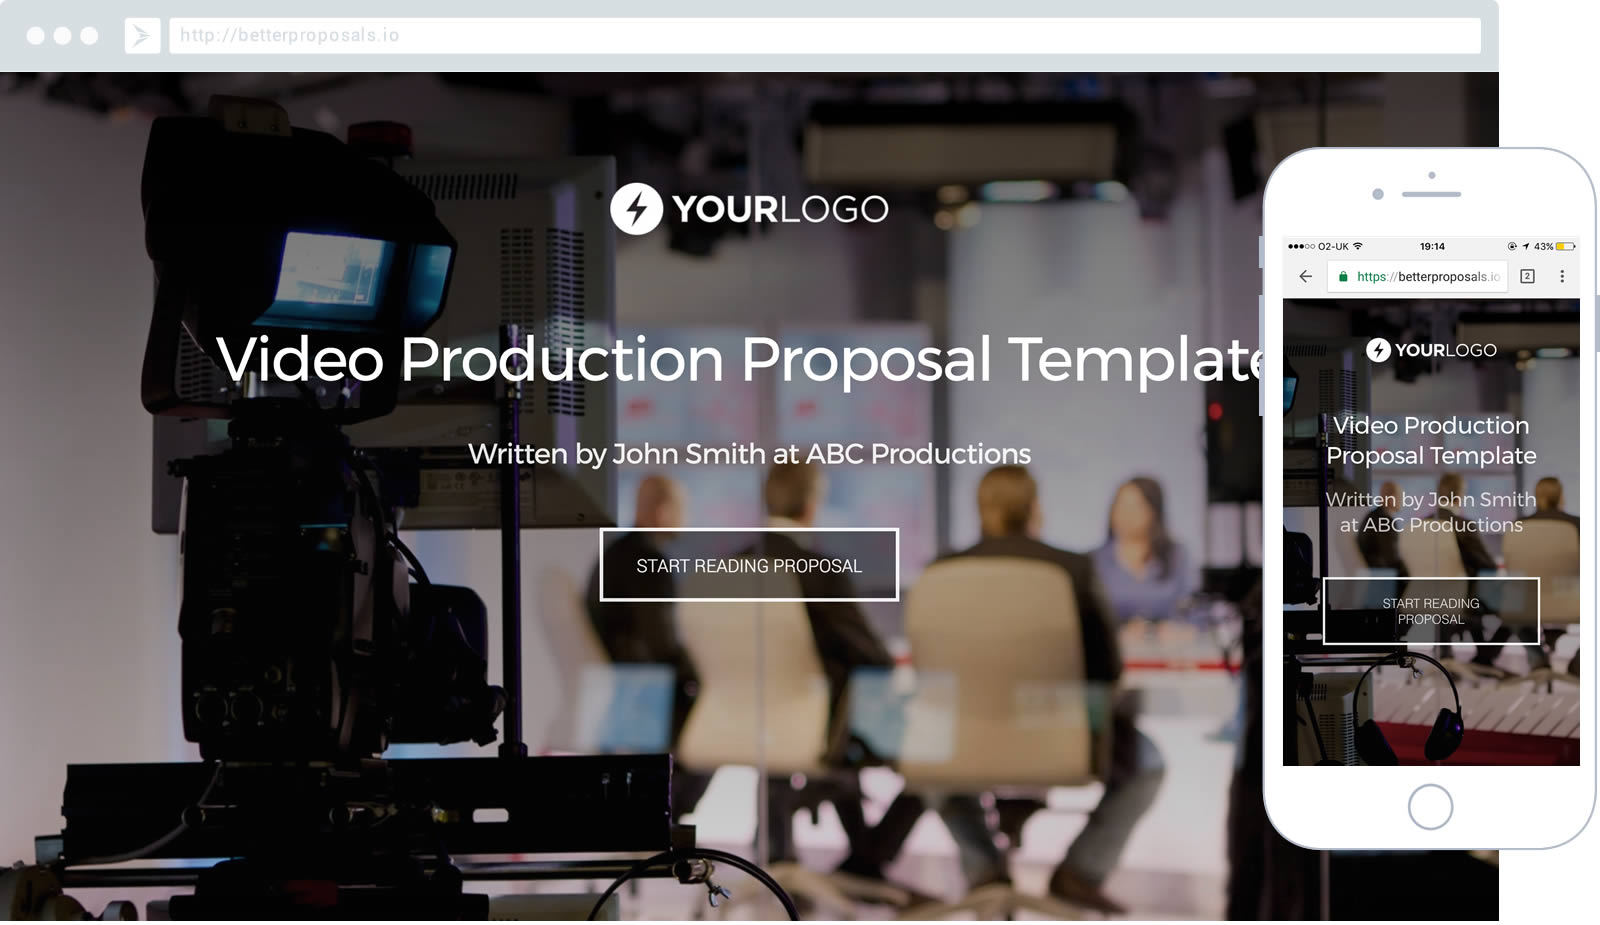 Free Corporate Video Production Proposal Template - Better Proposals